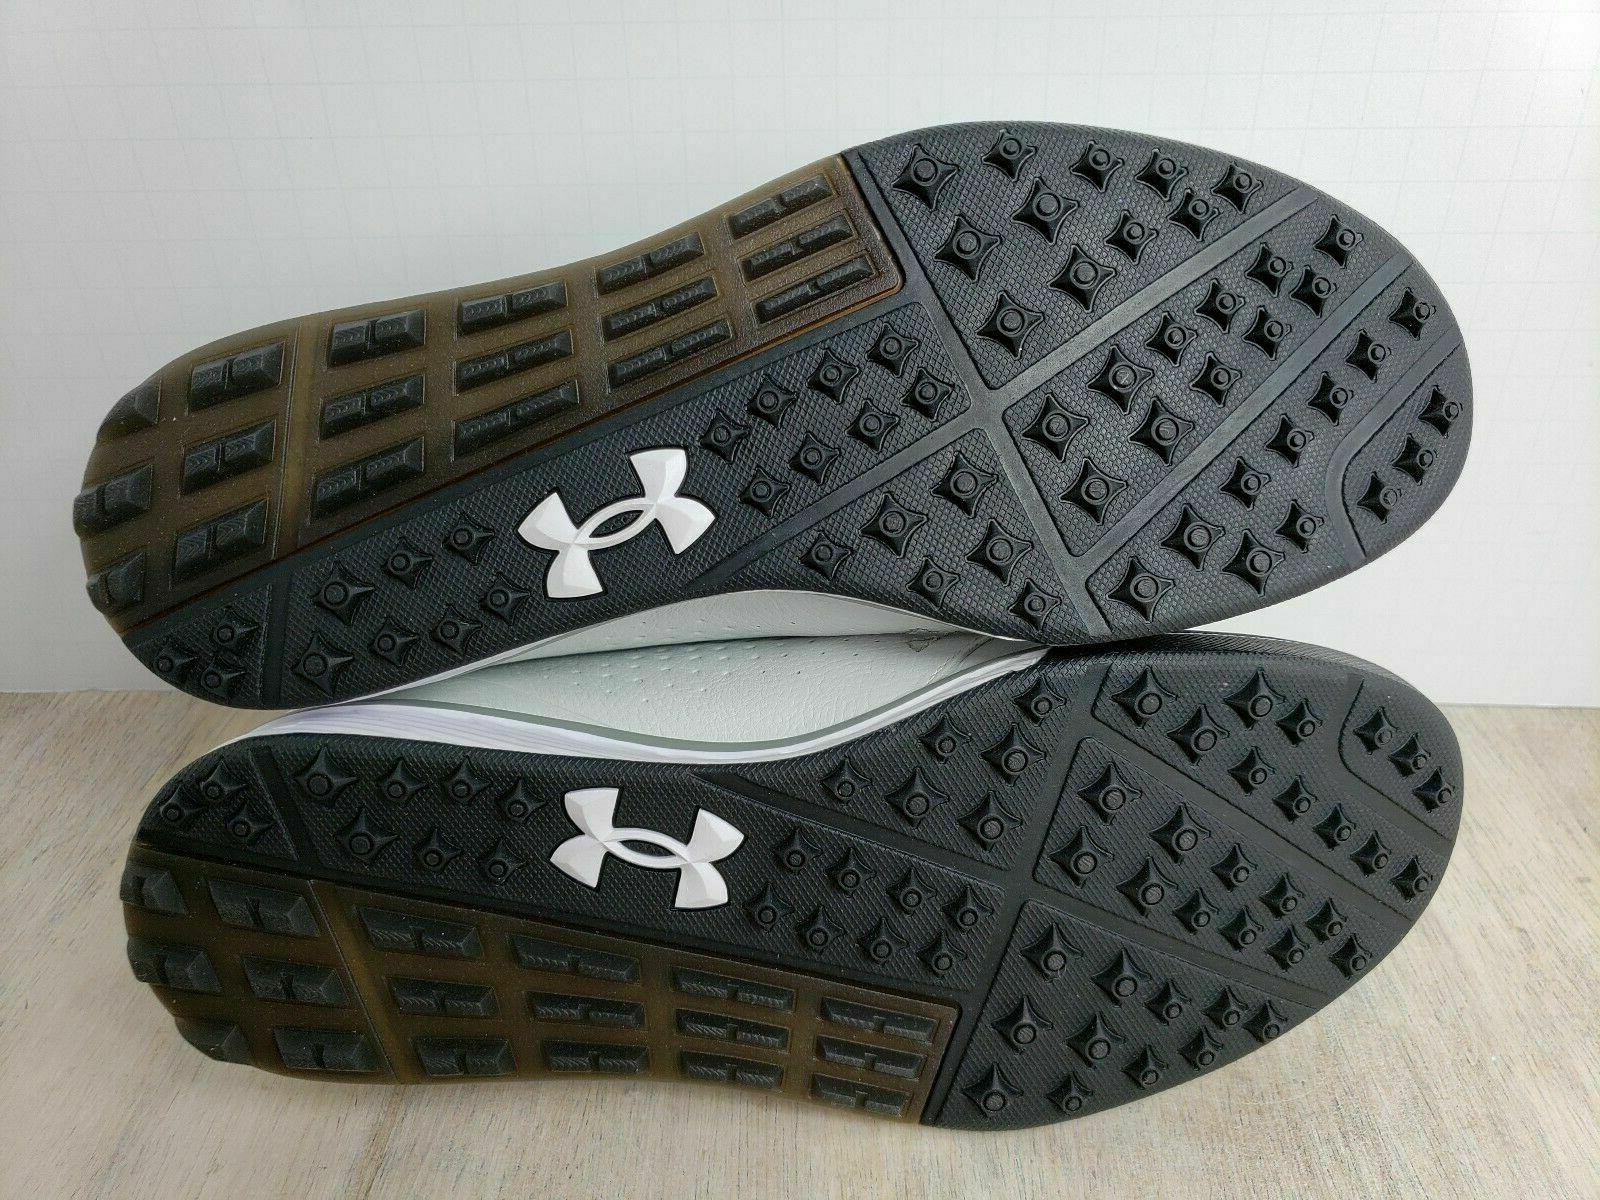 Under Armour Mens Spike less Golf Shoes Size 9 Tempo Hybrid